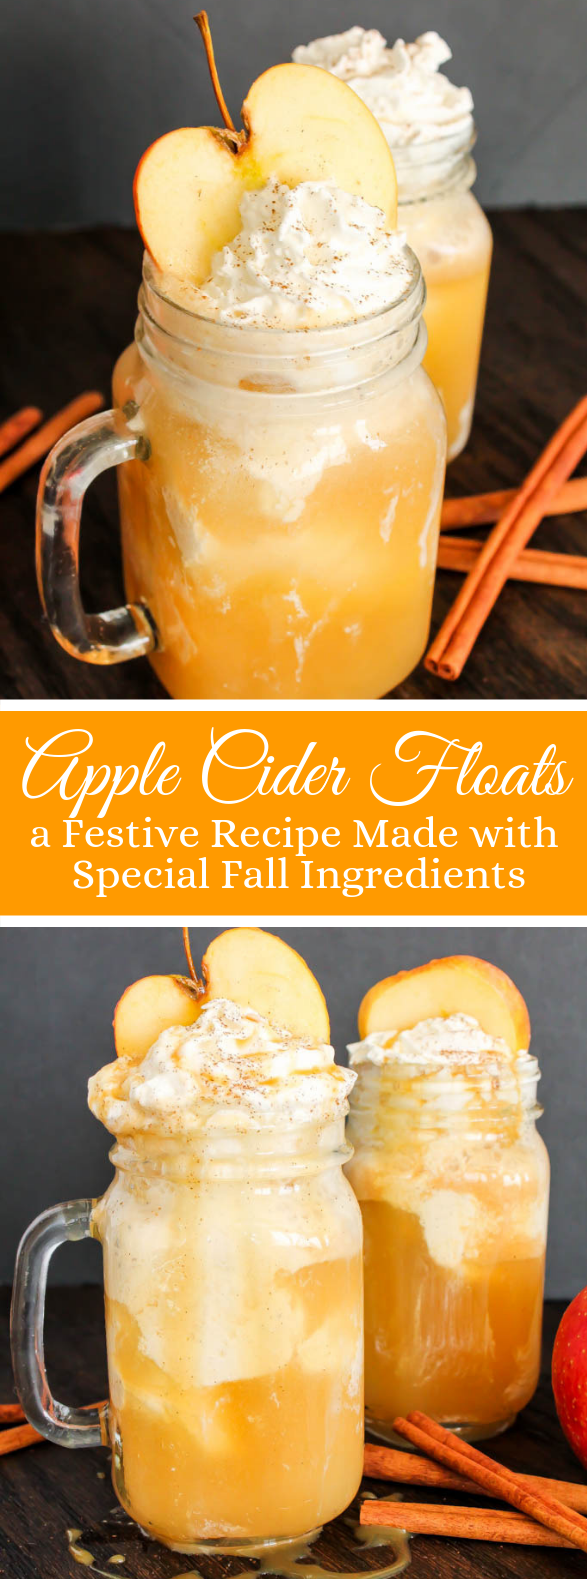 Apple Cider Floats #drinks #fall